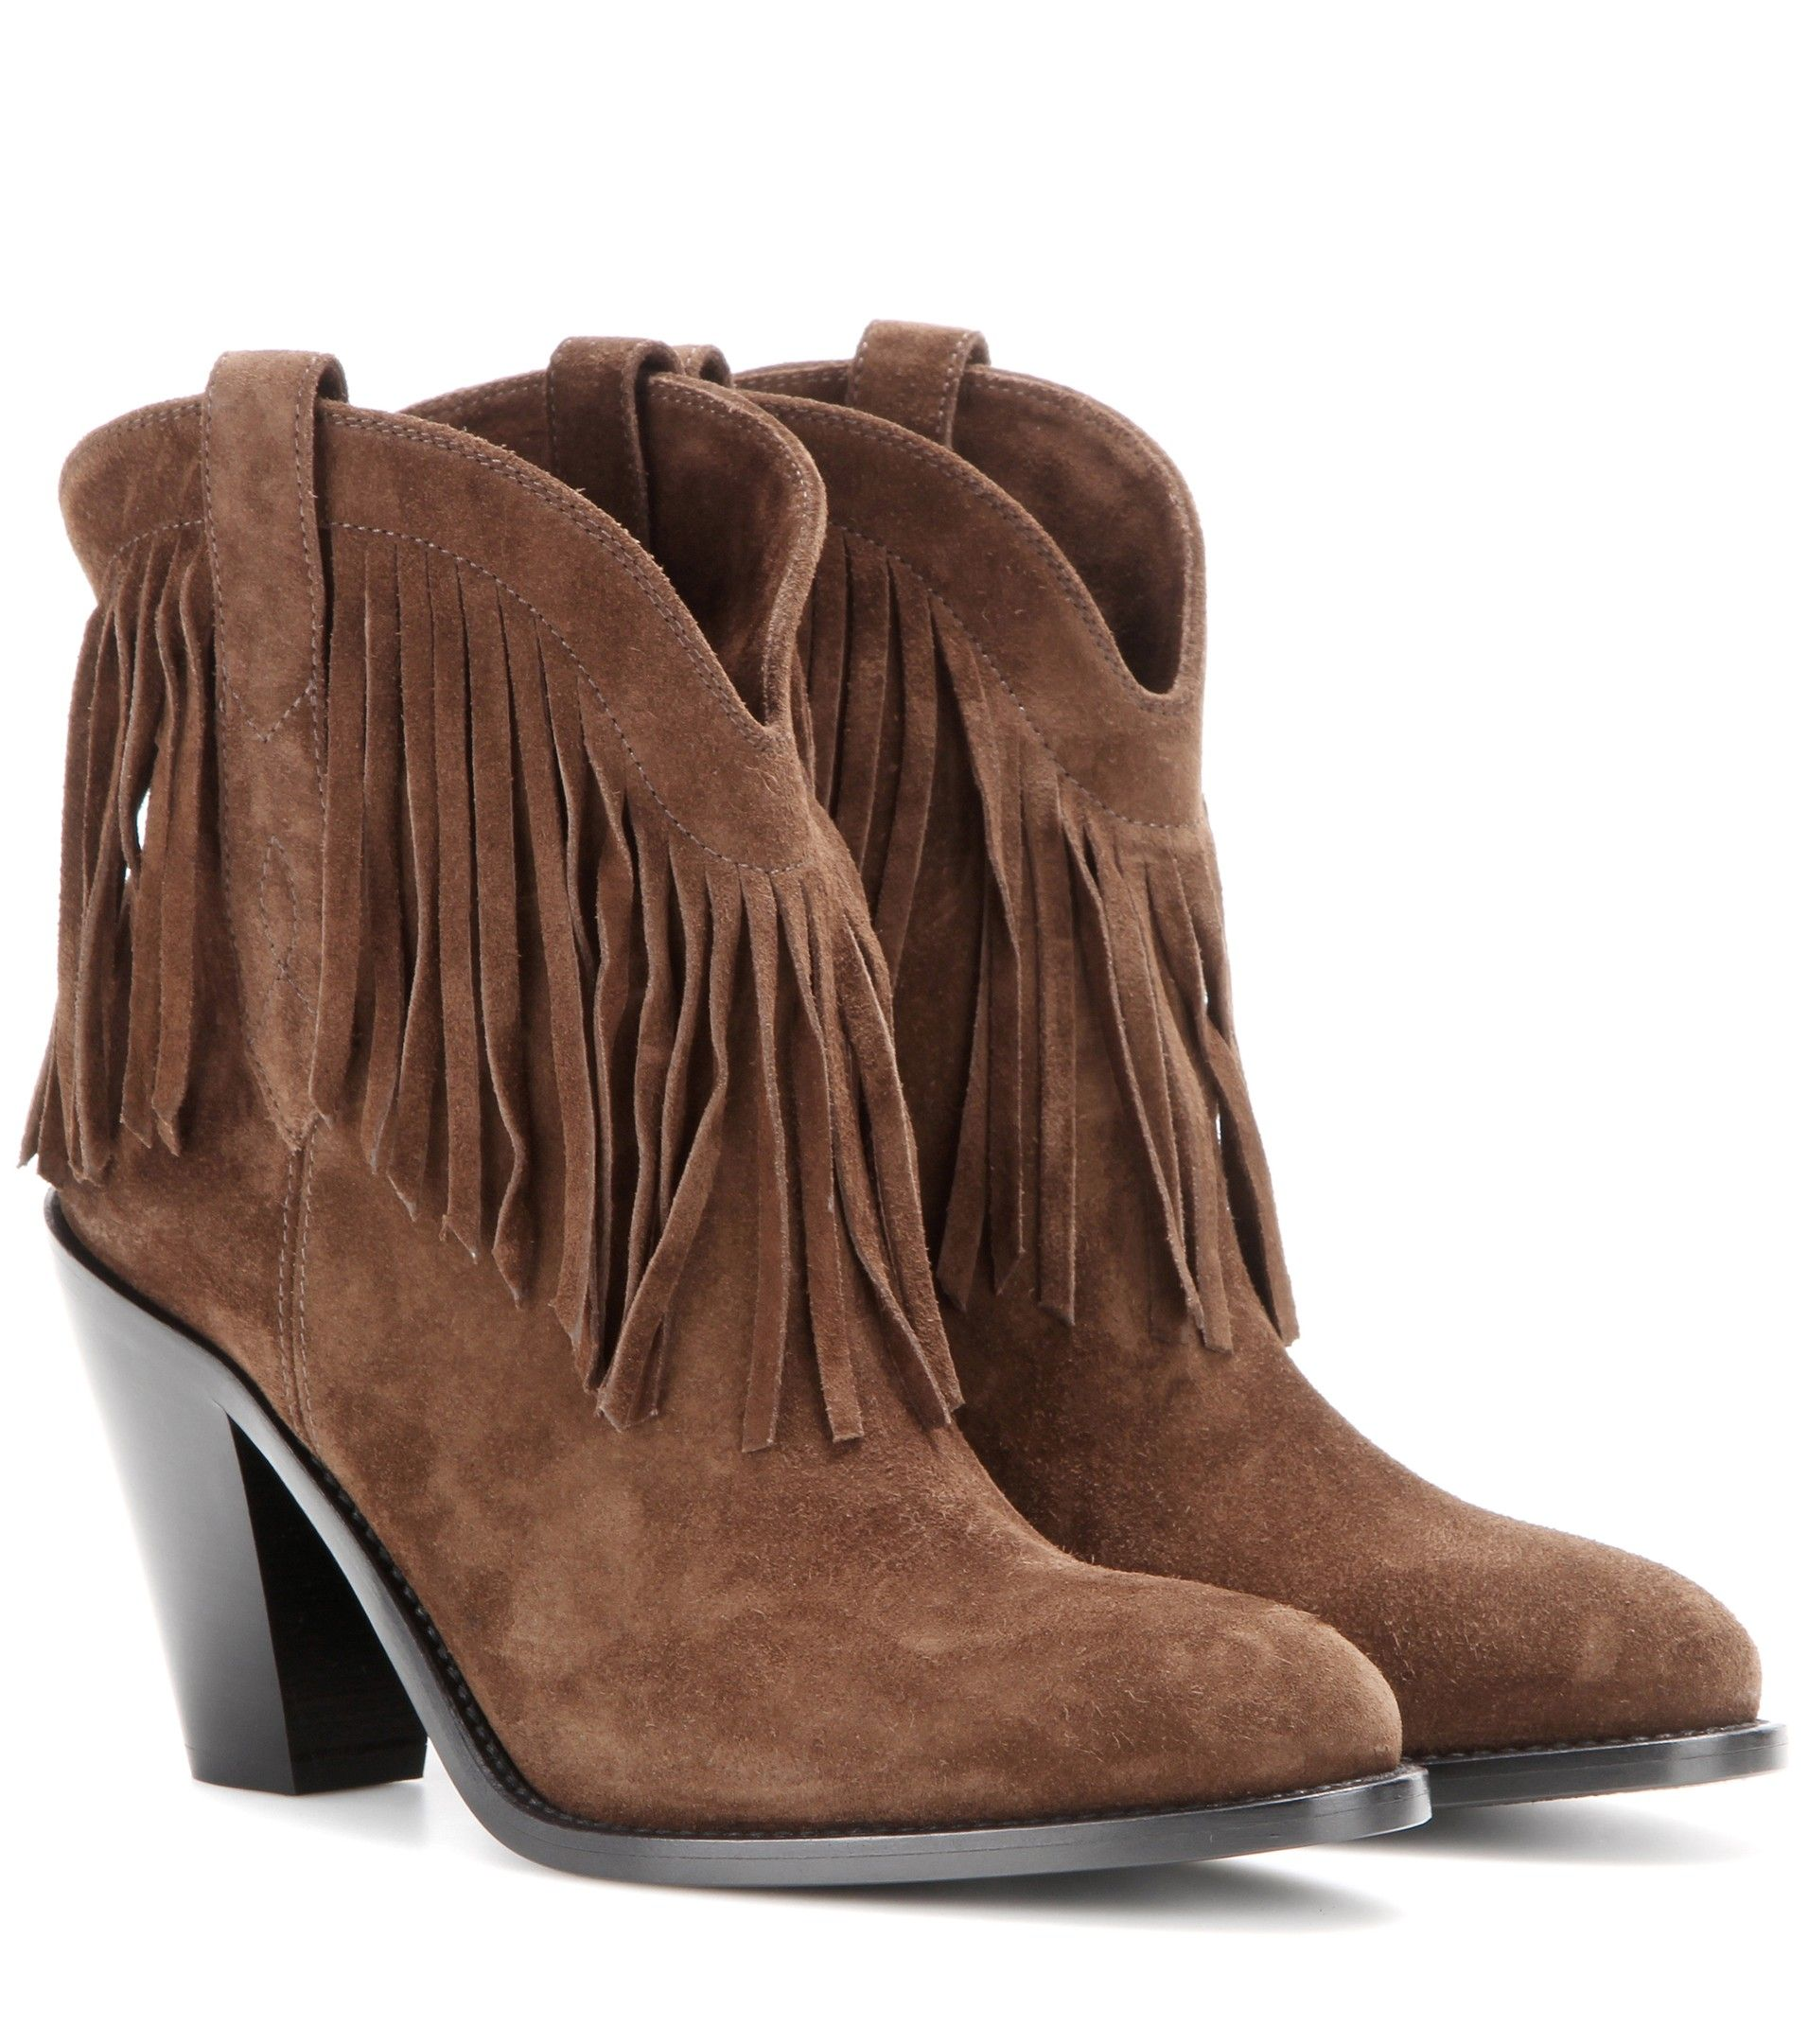 6cca1cfe4cb Saint Laurent Curtis 80 fringed suede cowboy boots Coffee $159.00 ...